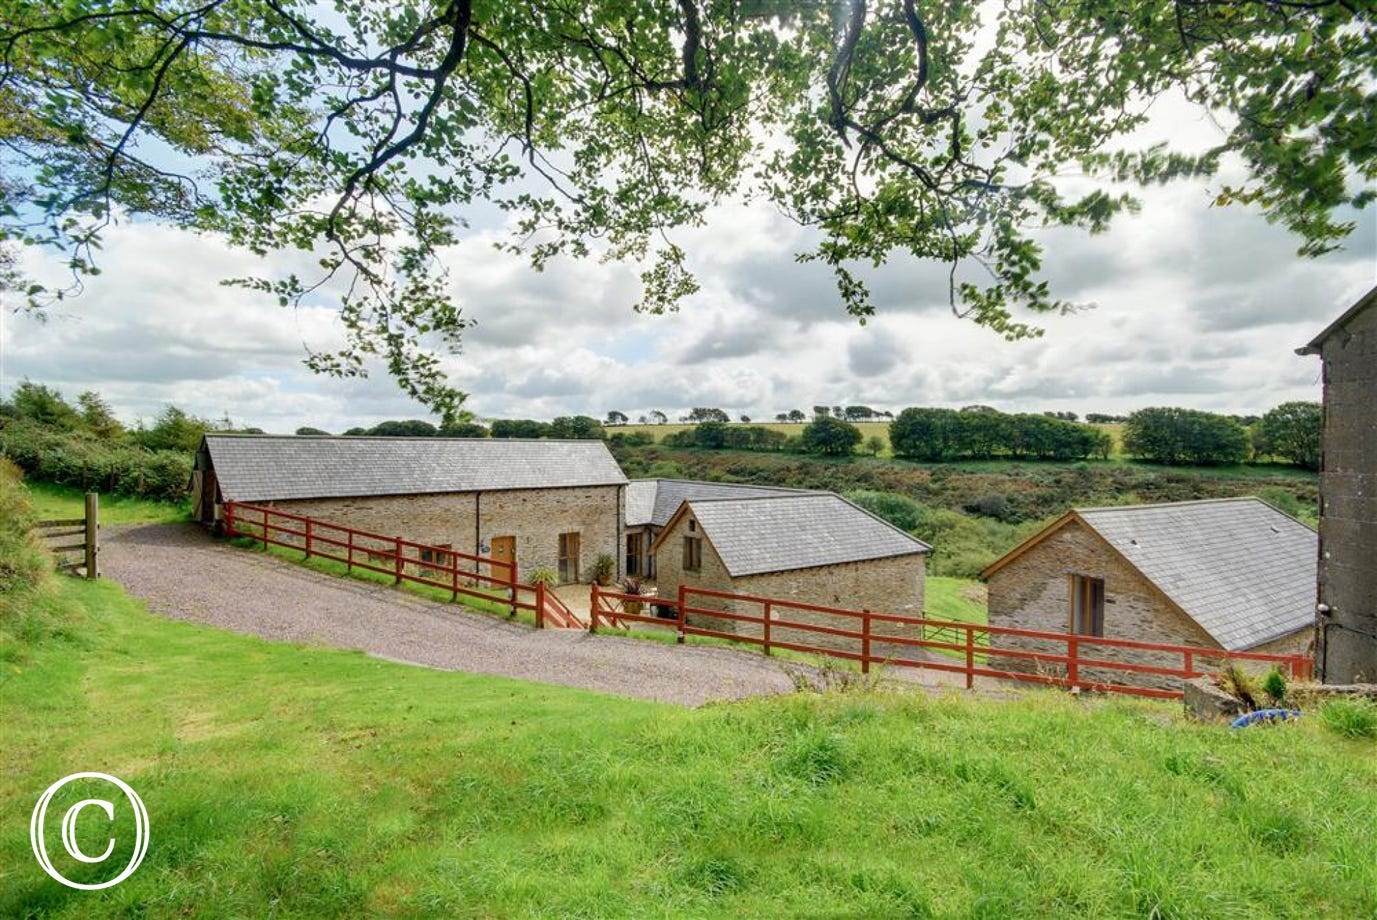 Ettiford Farm Cottages are high quality barn conversions within a traditional farmyard setting